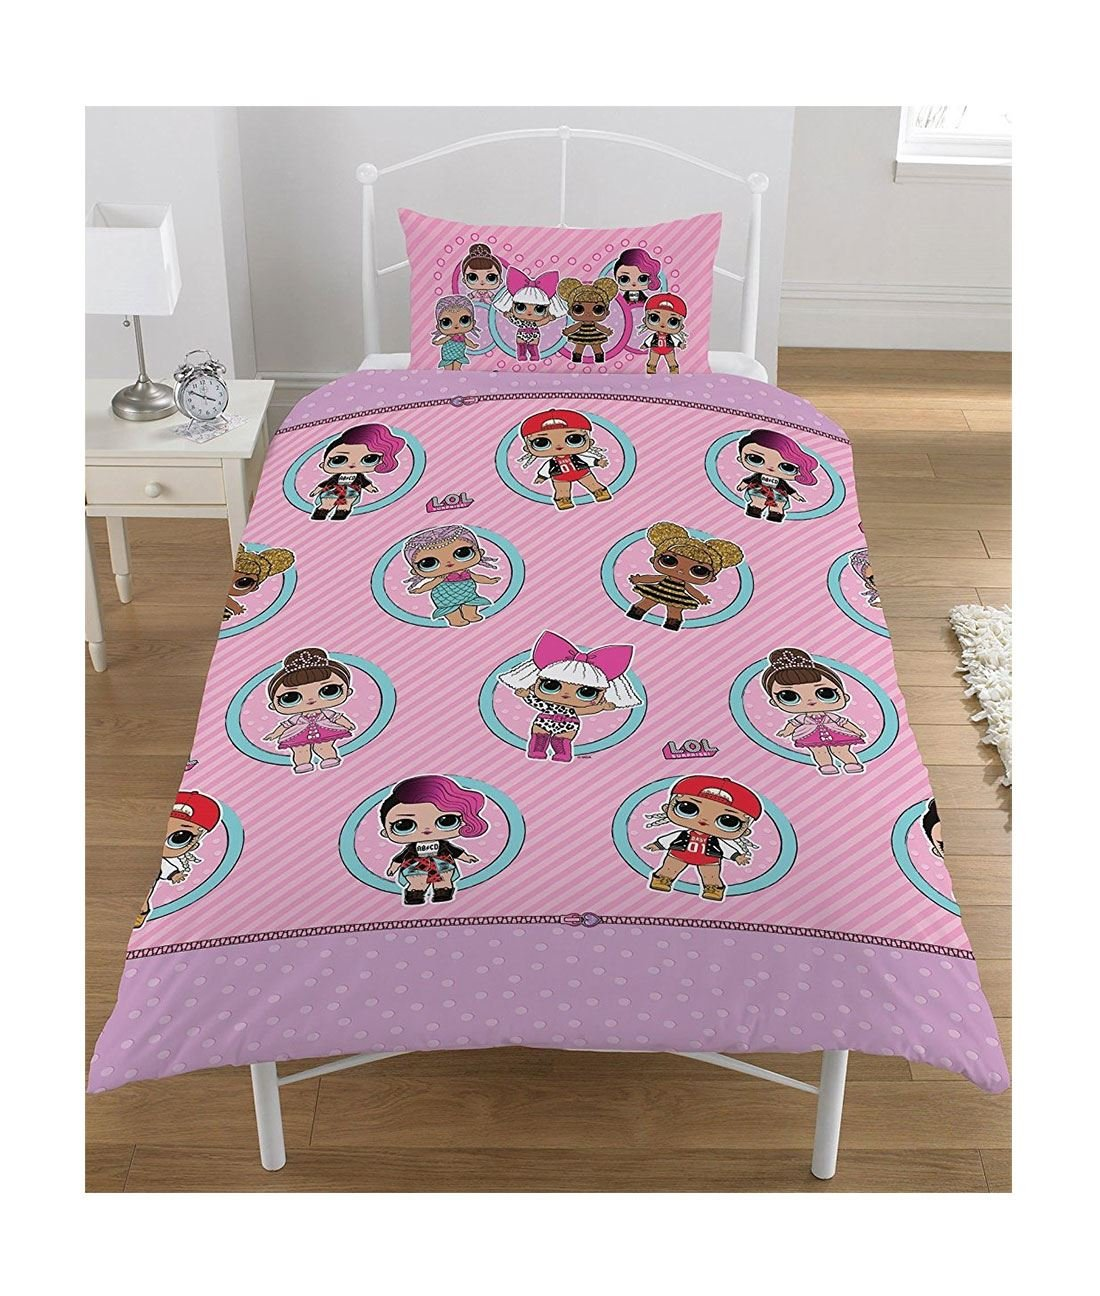 DIGITAL SPOT Girls LOL Surprise Collectible Reversible Quilt Pillow Case Kids Single Bedding Single Size